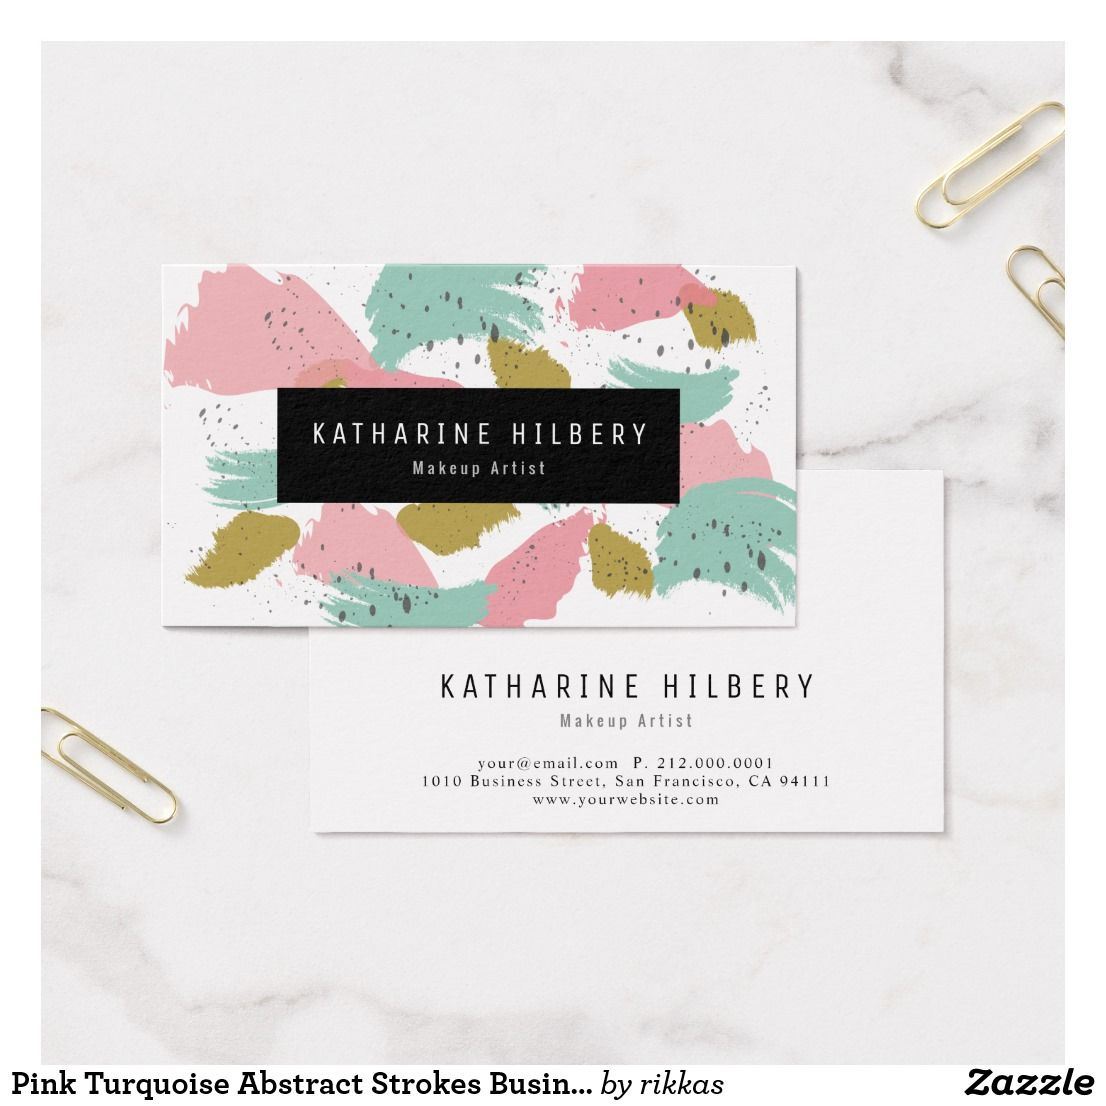 Pink Turquoise Abstract Painting Business Card Pink Turquoise